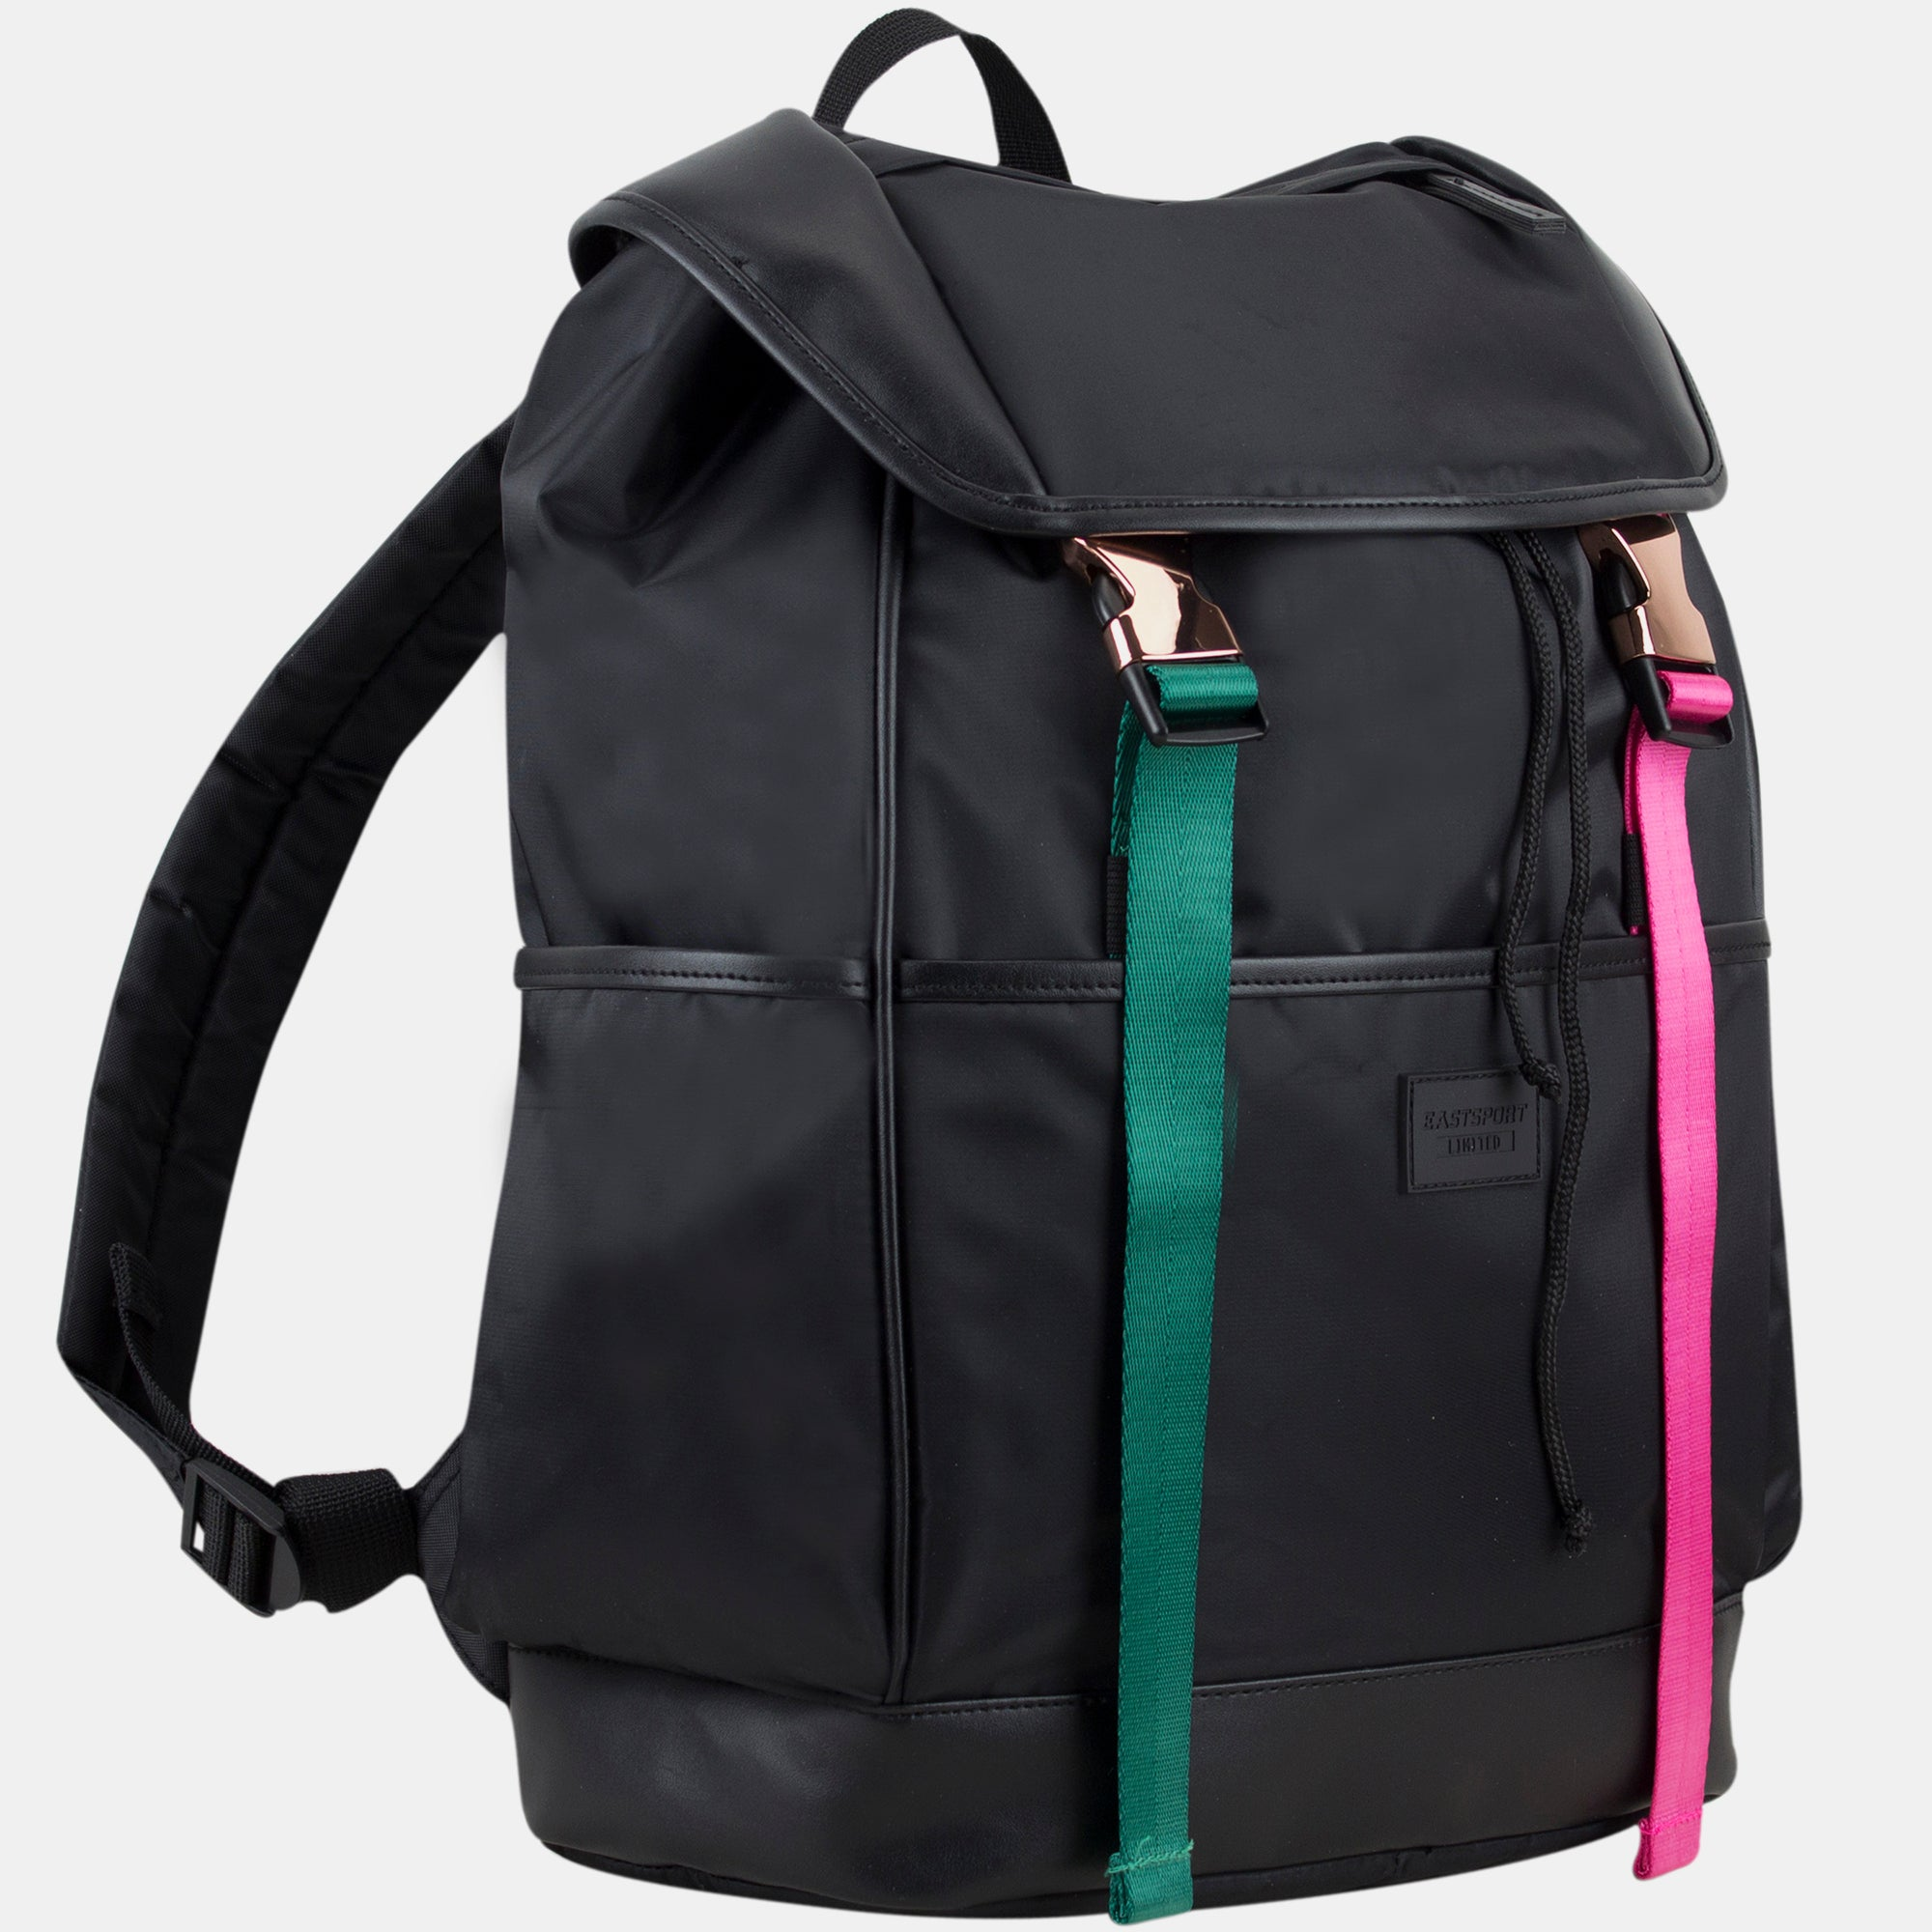 Eastsport Limited Buckle Drawstring Backpack